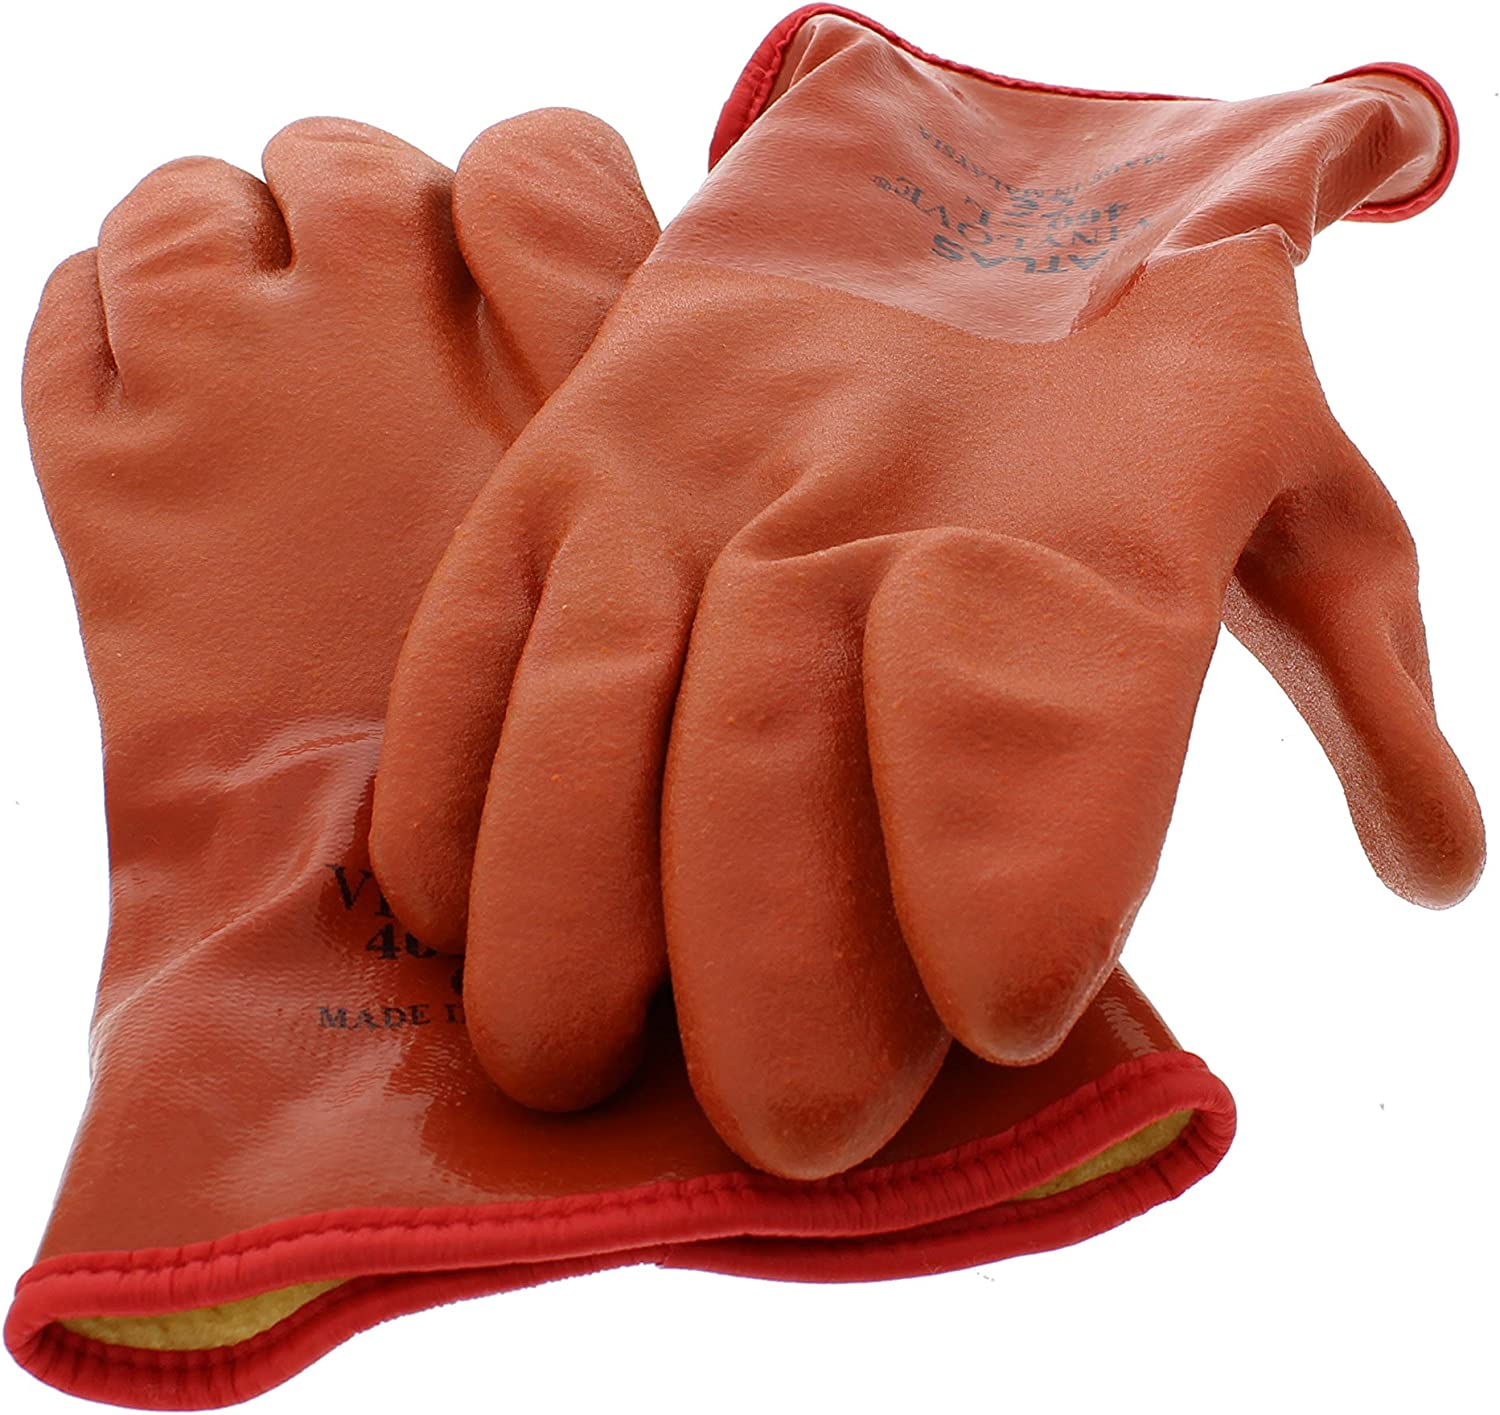 Showa Atlas 460 Max 67% OFF Selling Vinylove Cold Insulated - Large Resistant Gloves